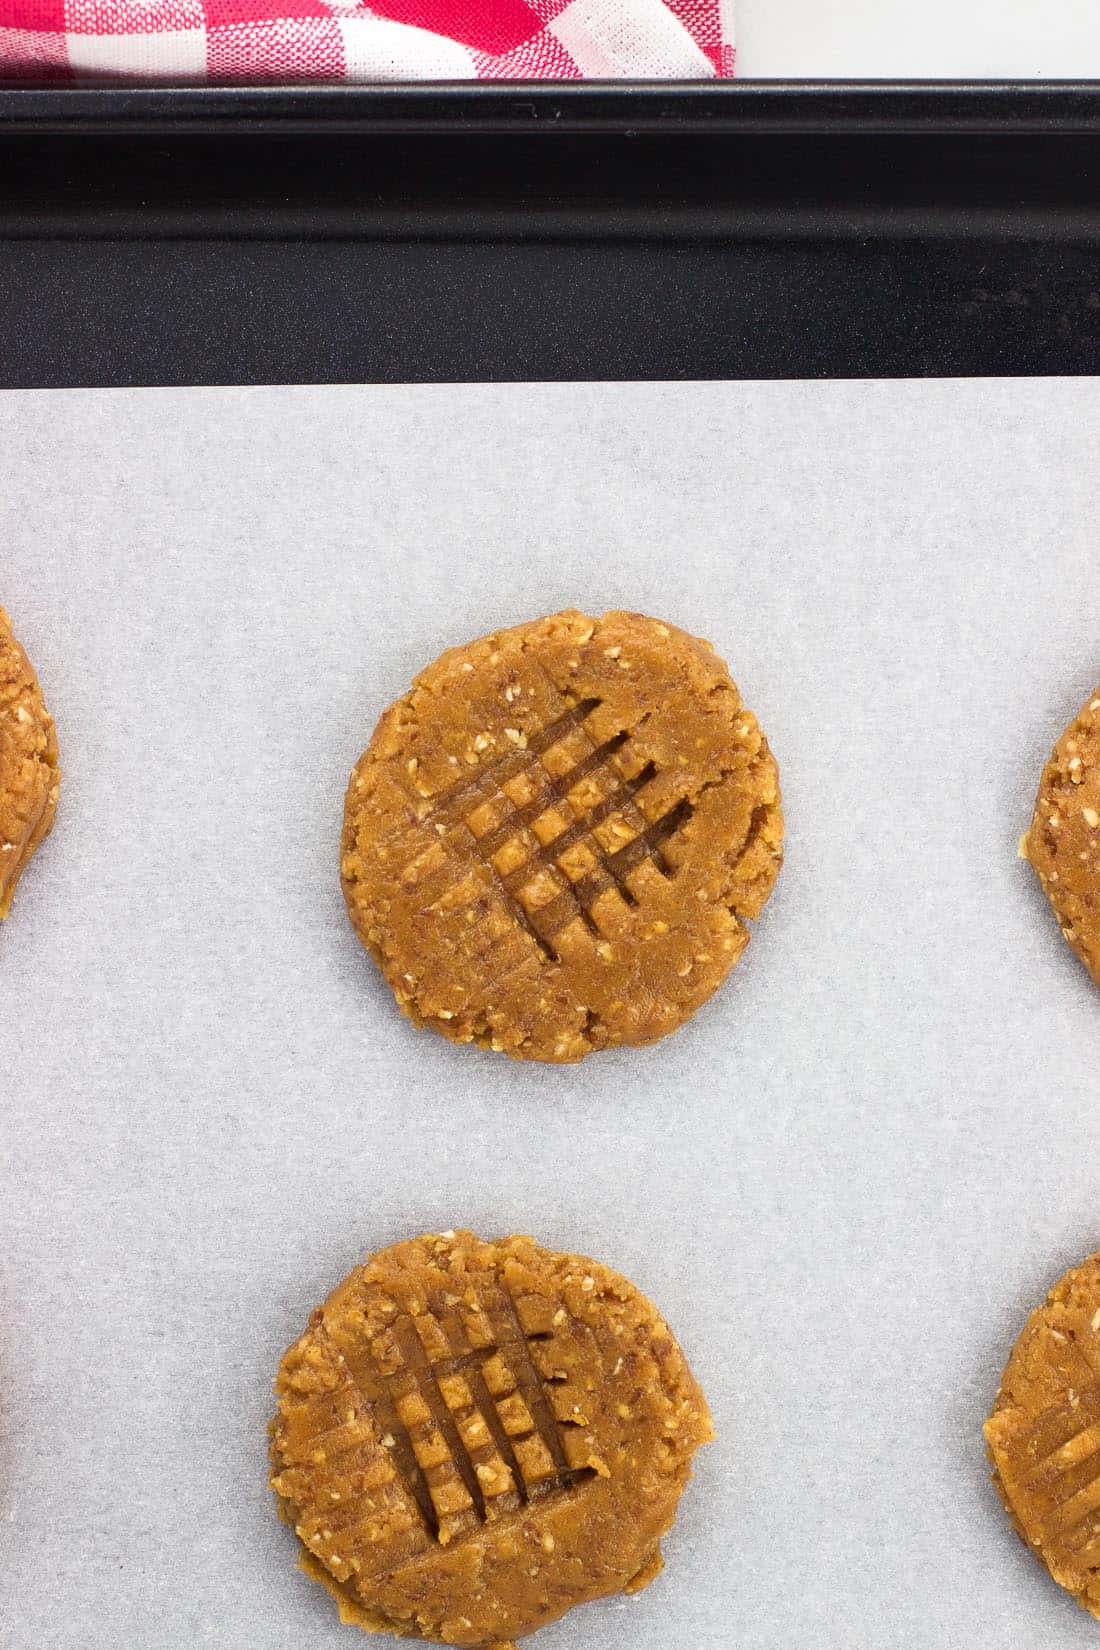 Flatted cookies on a baking sheet with a criss-cross pattern pressed on top.